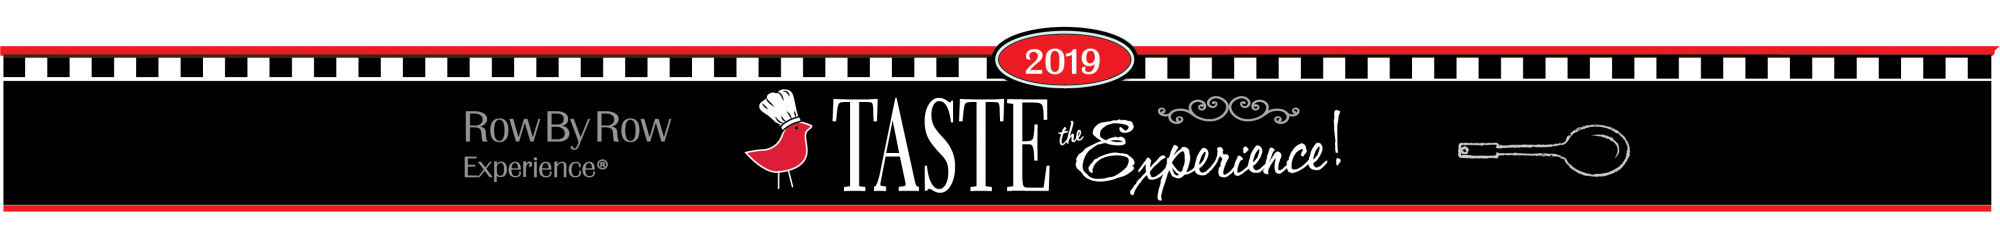 2019 Row By Row Experience 2019 Taste The Experience